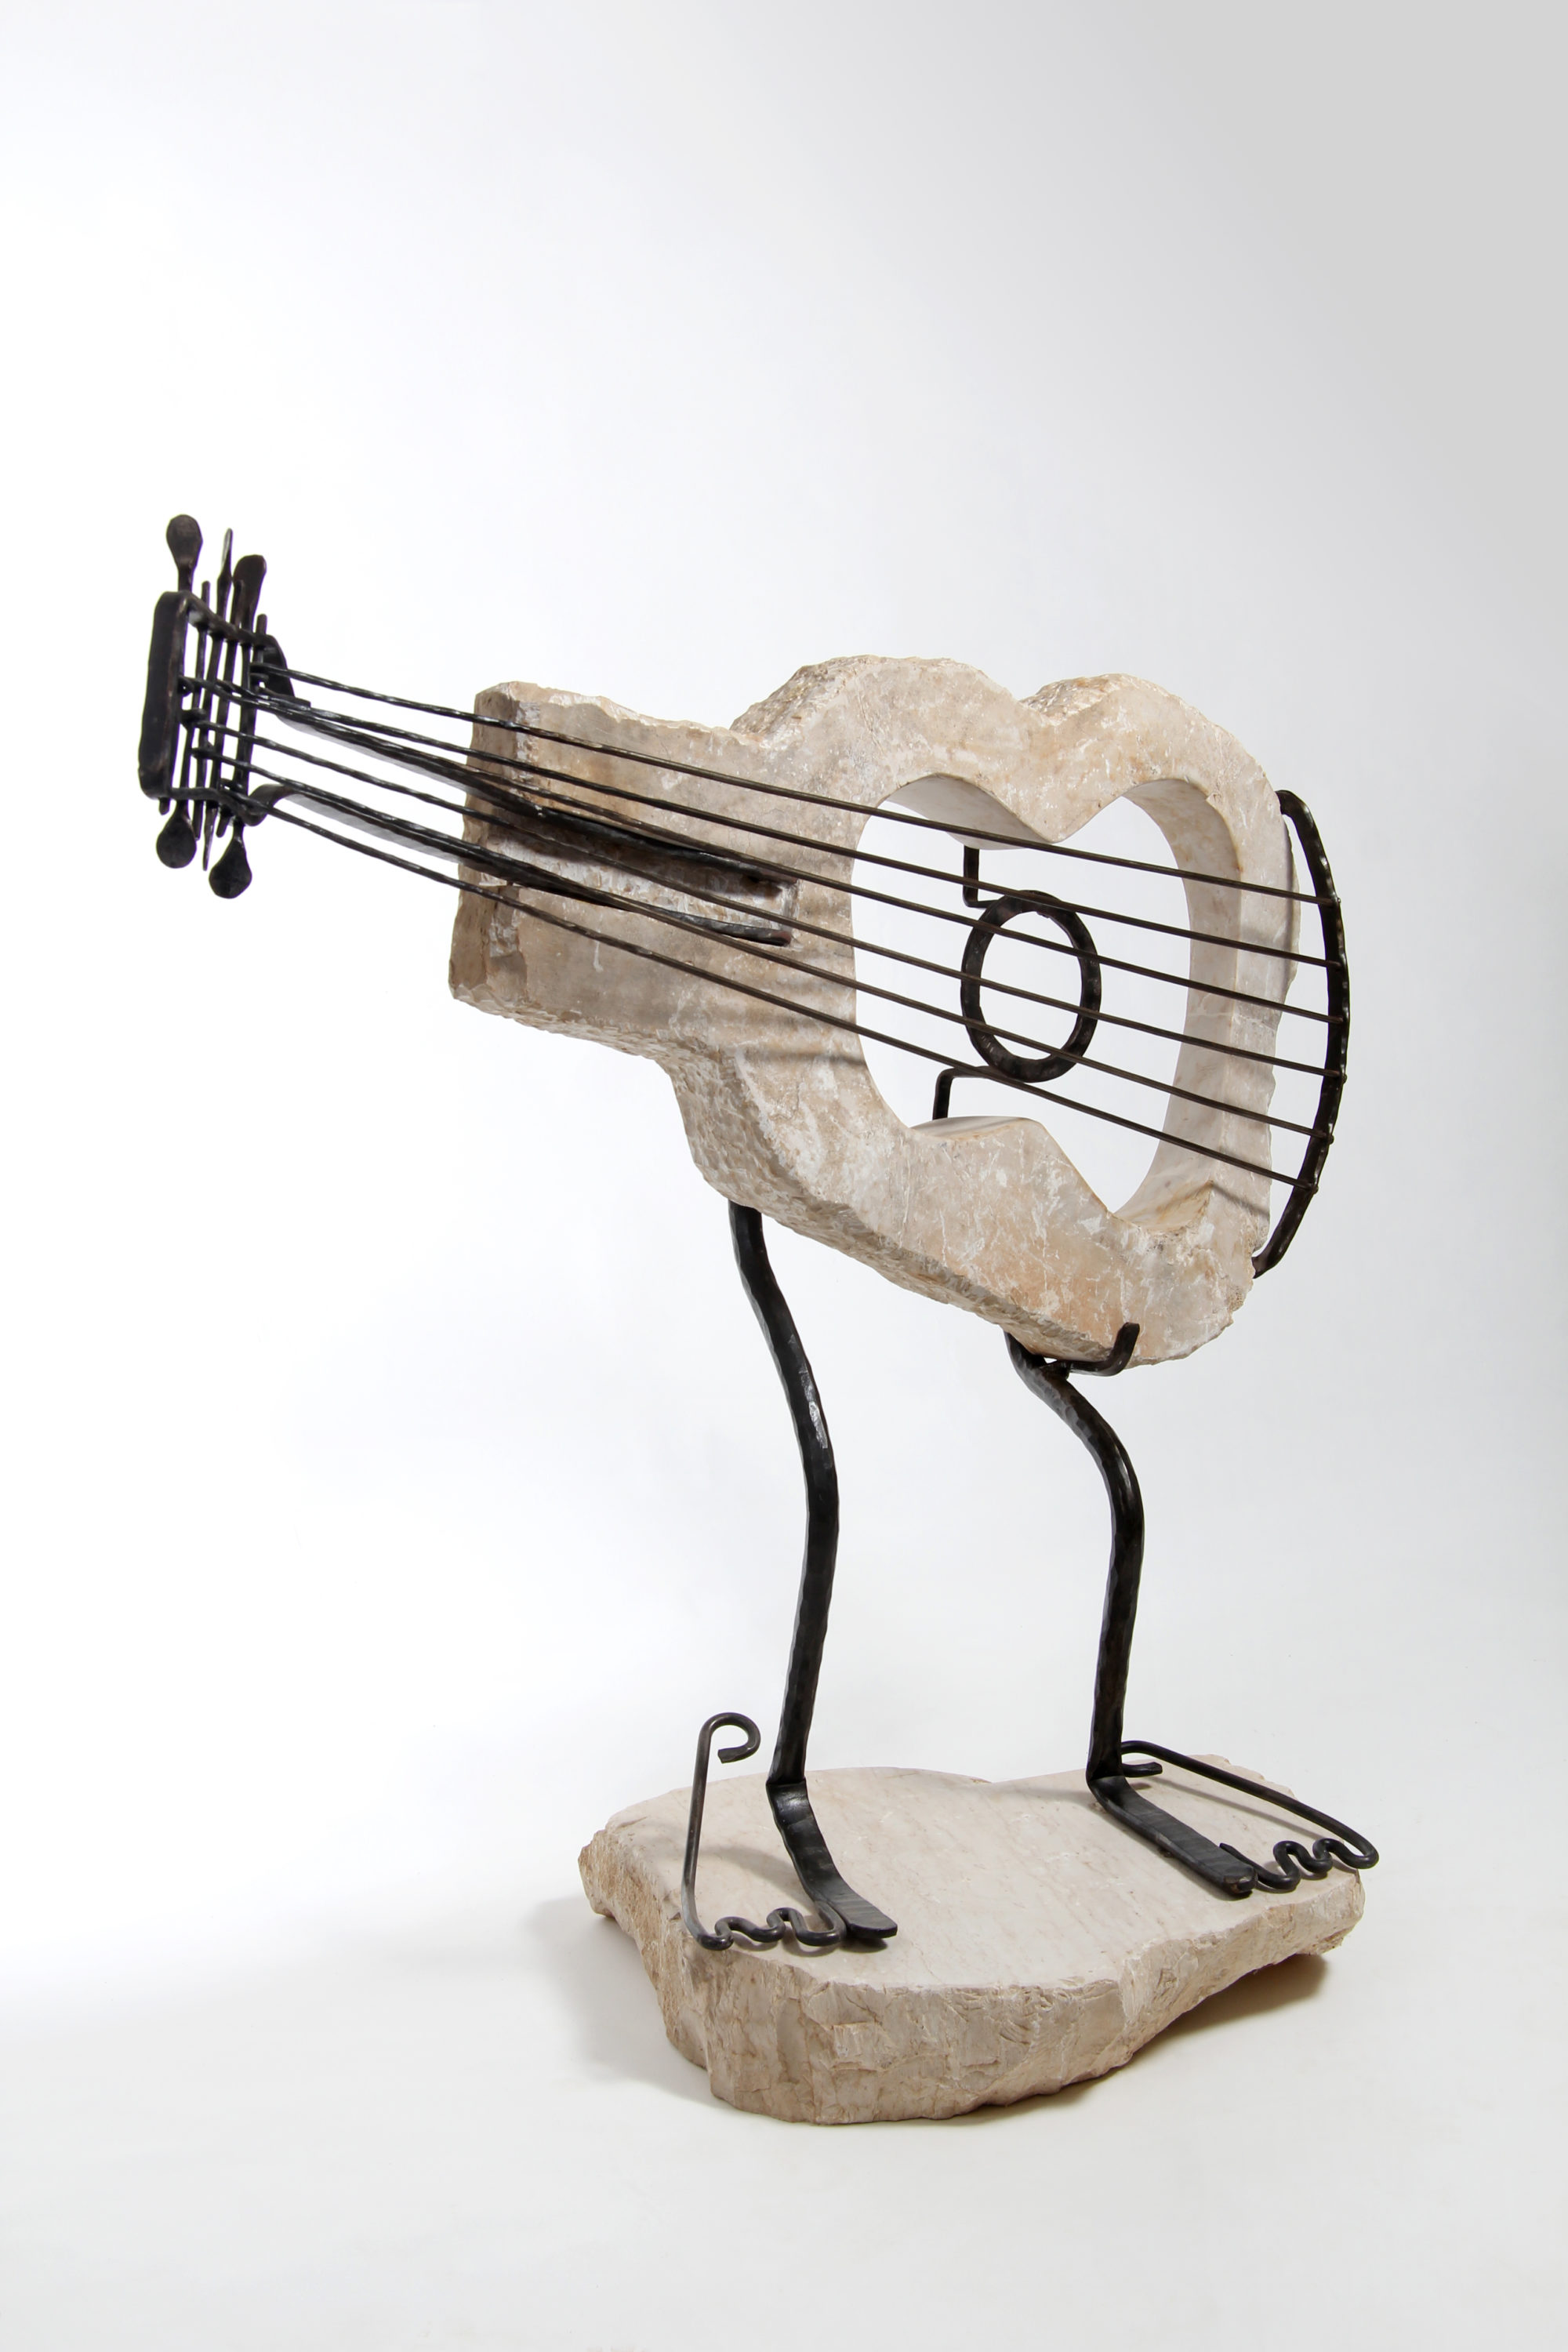 Guitar Sculpture of Jerusalem Stone and Forged Iron